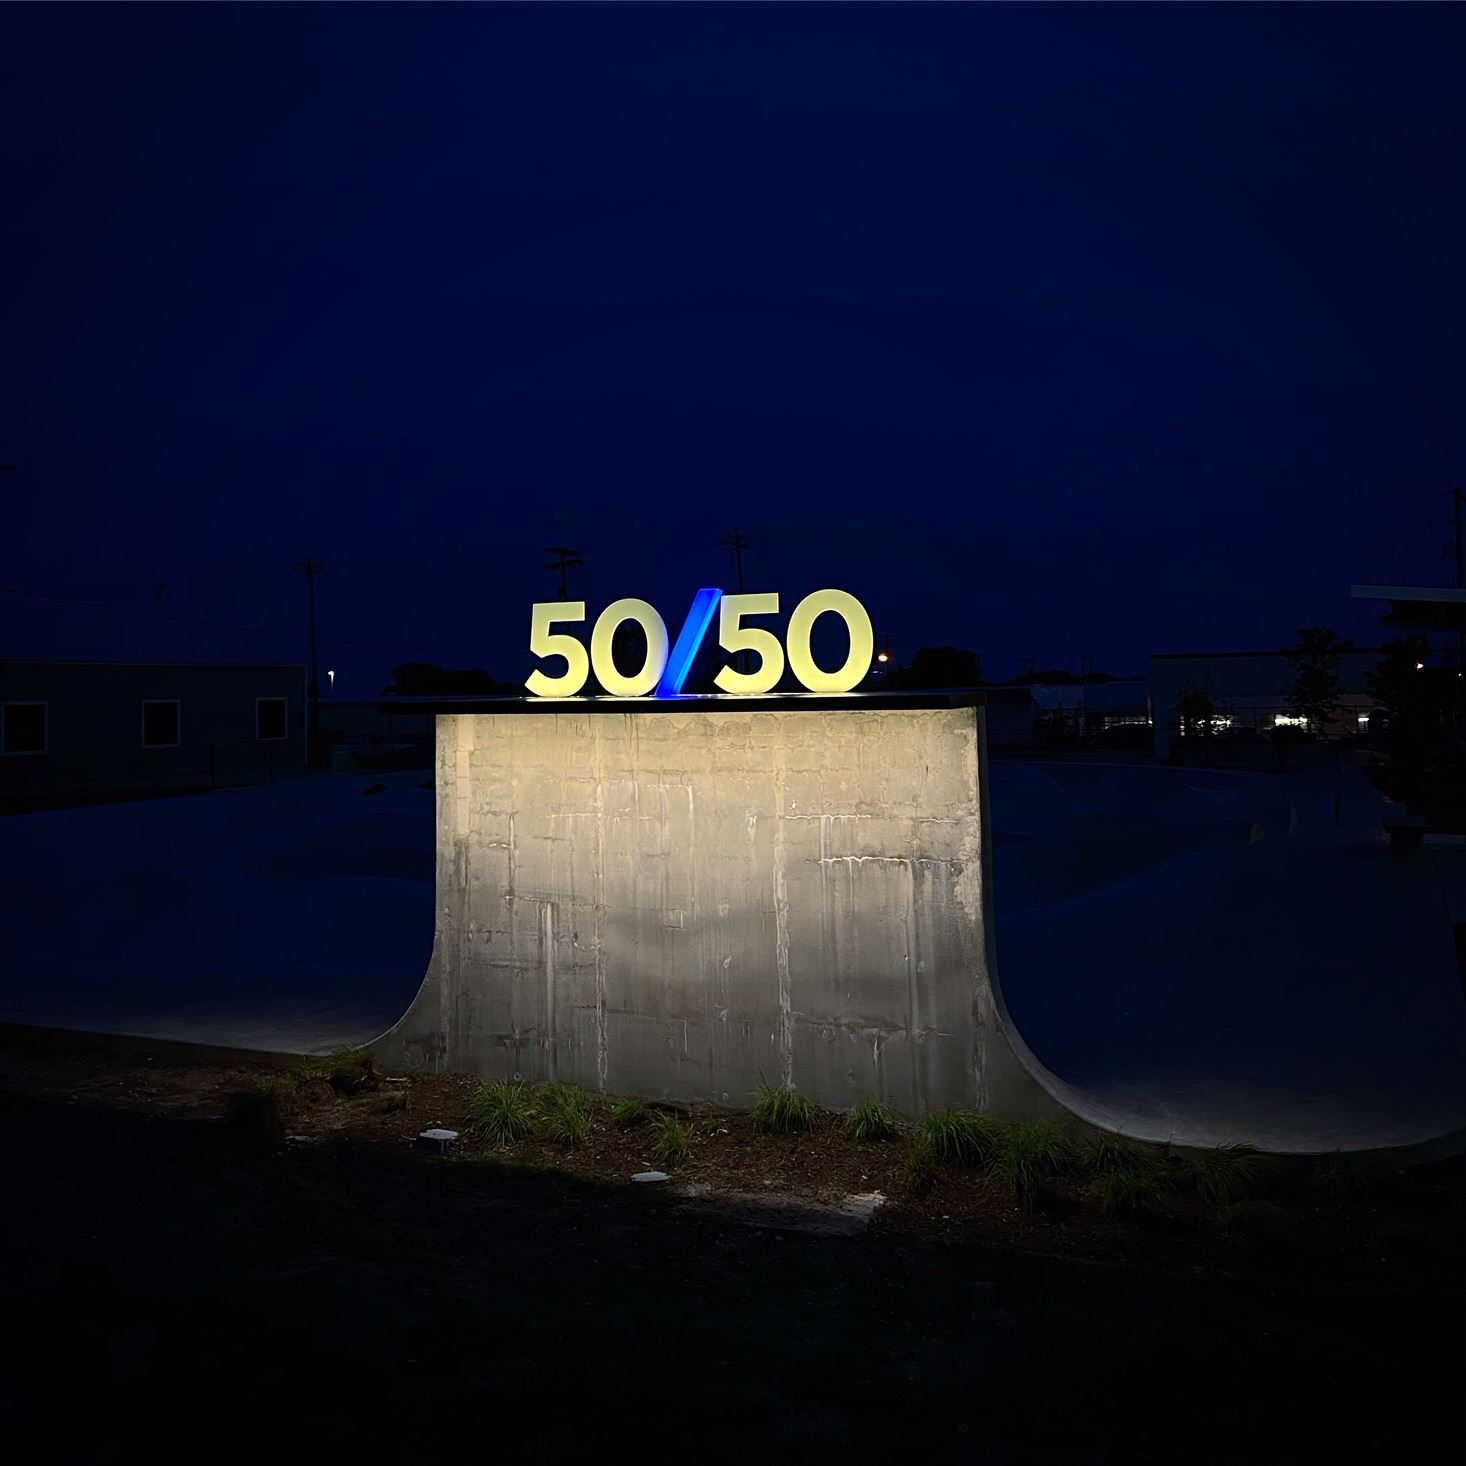 5050 Sign Pierce Park